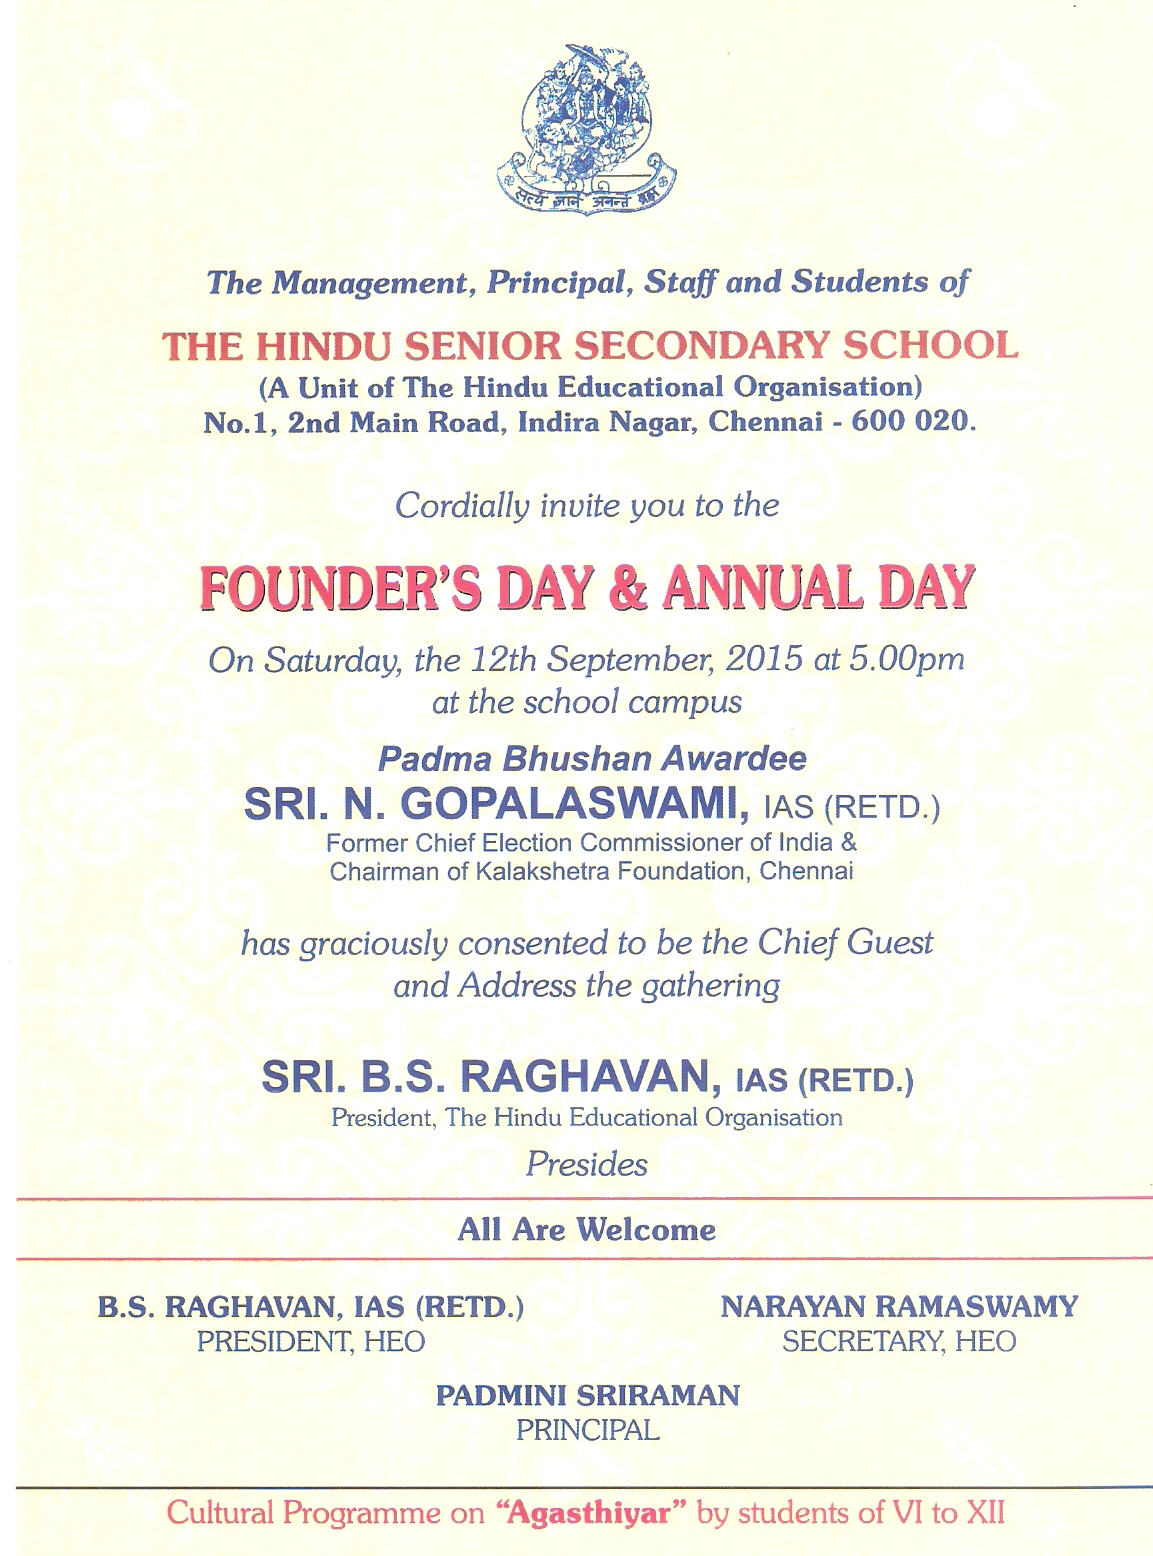 FOUNDER'S DAY & ANNUAL DAY 2015